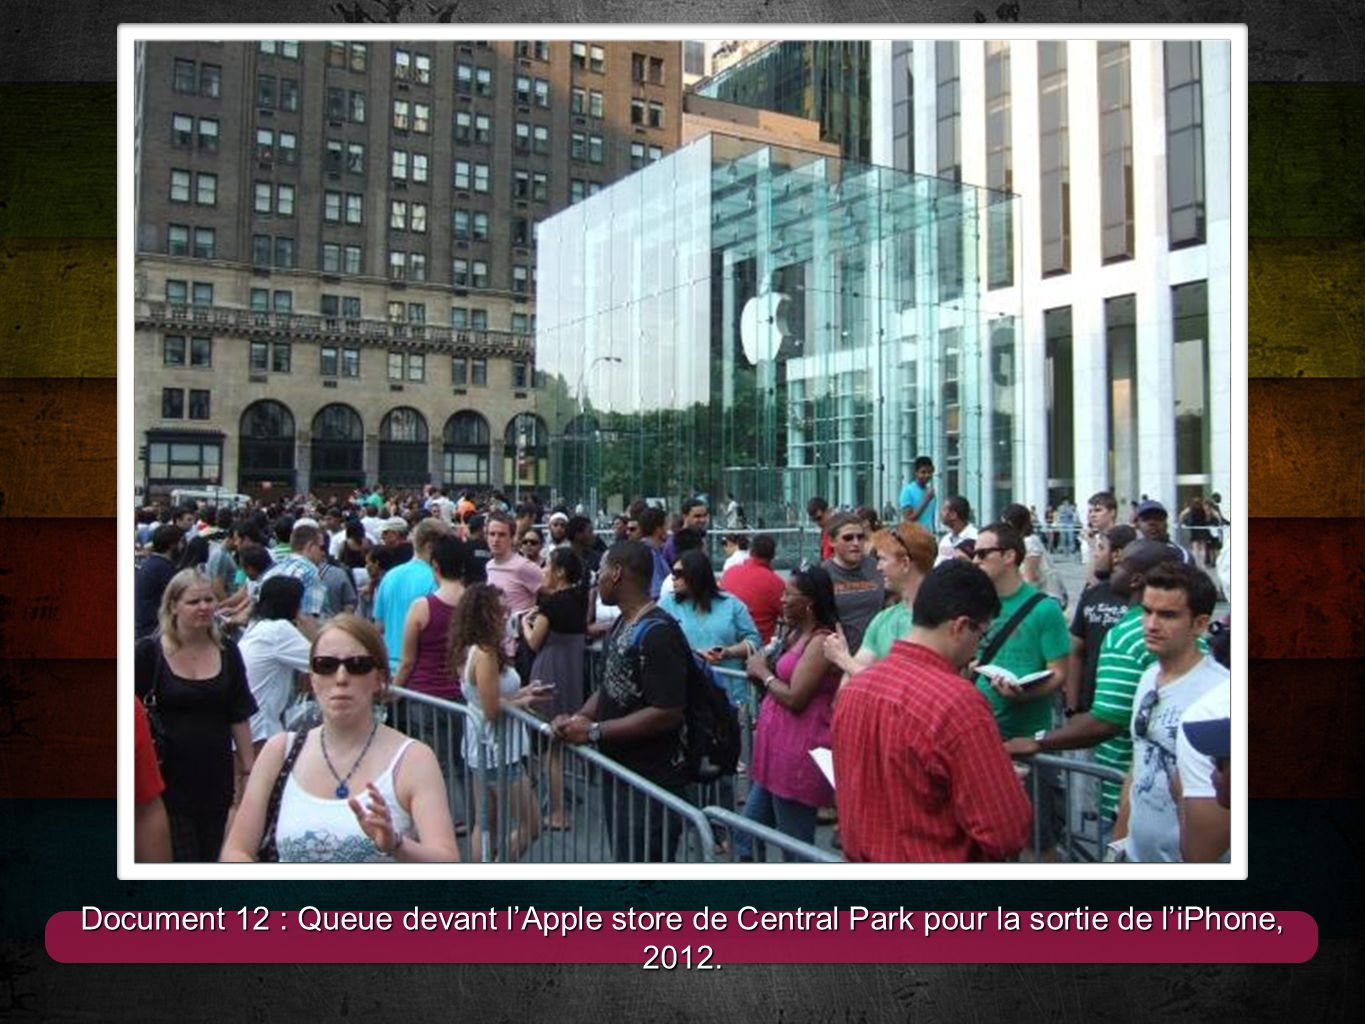 Document 12 : Queue devant l'Apple store de Central Park pour la sortie de l'iPhone, 2012.